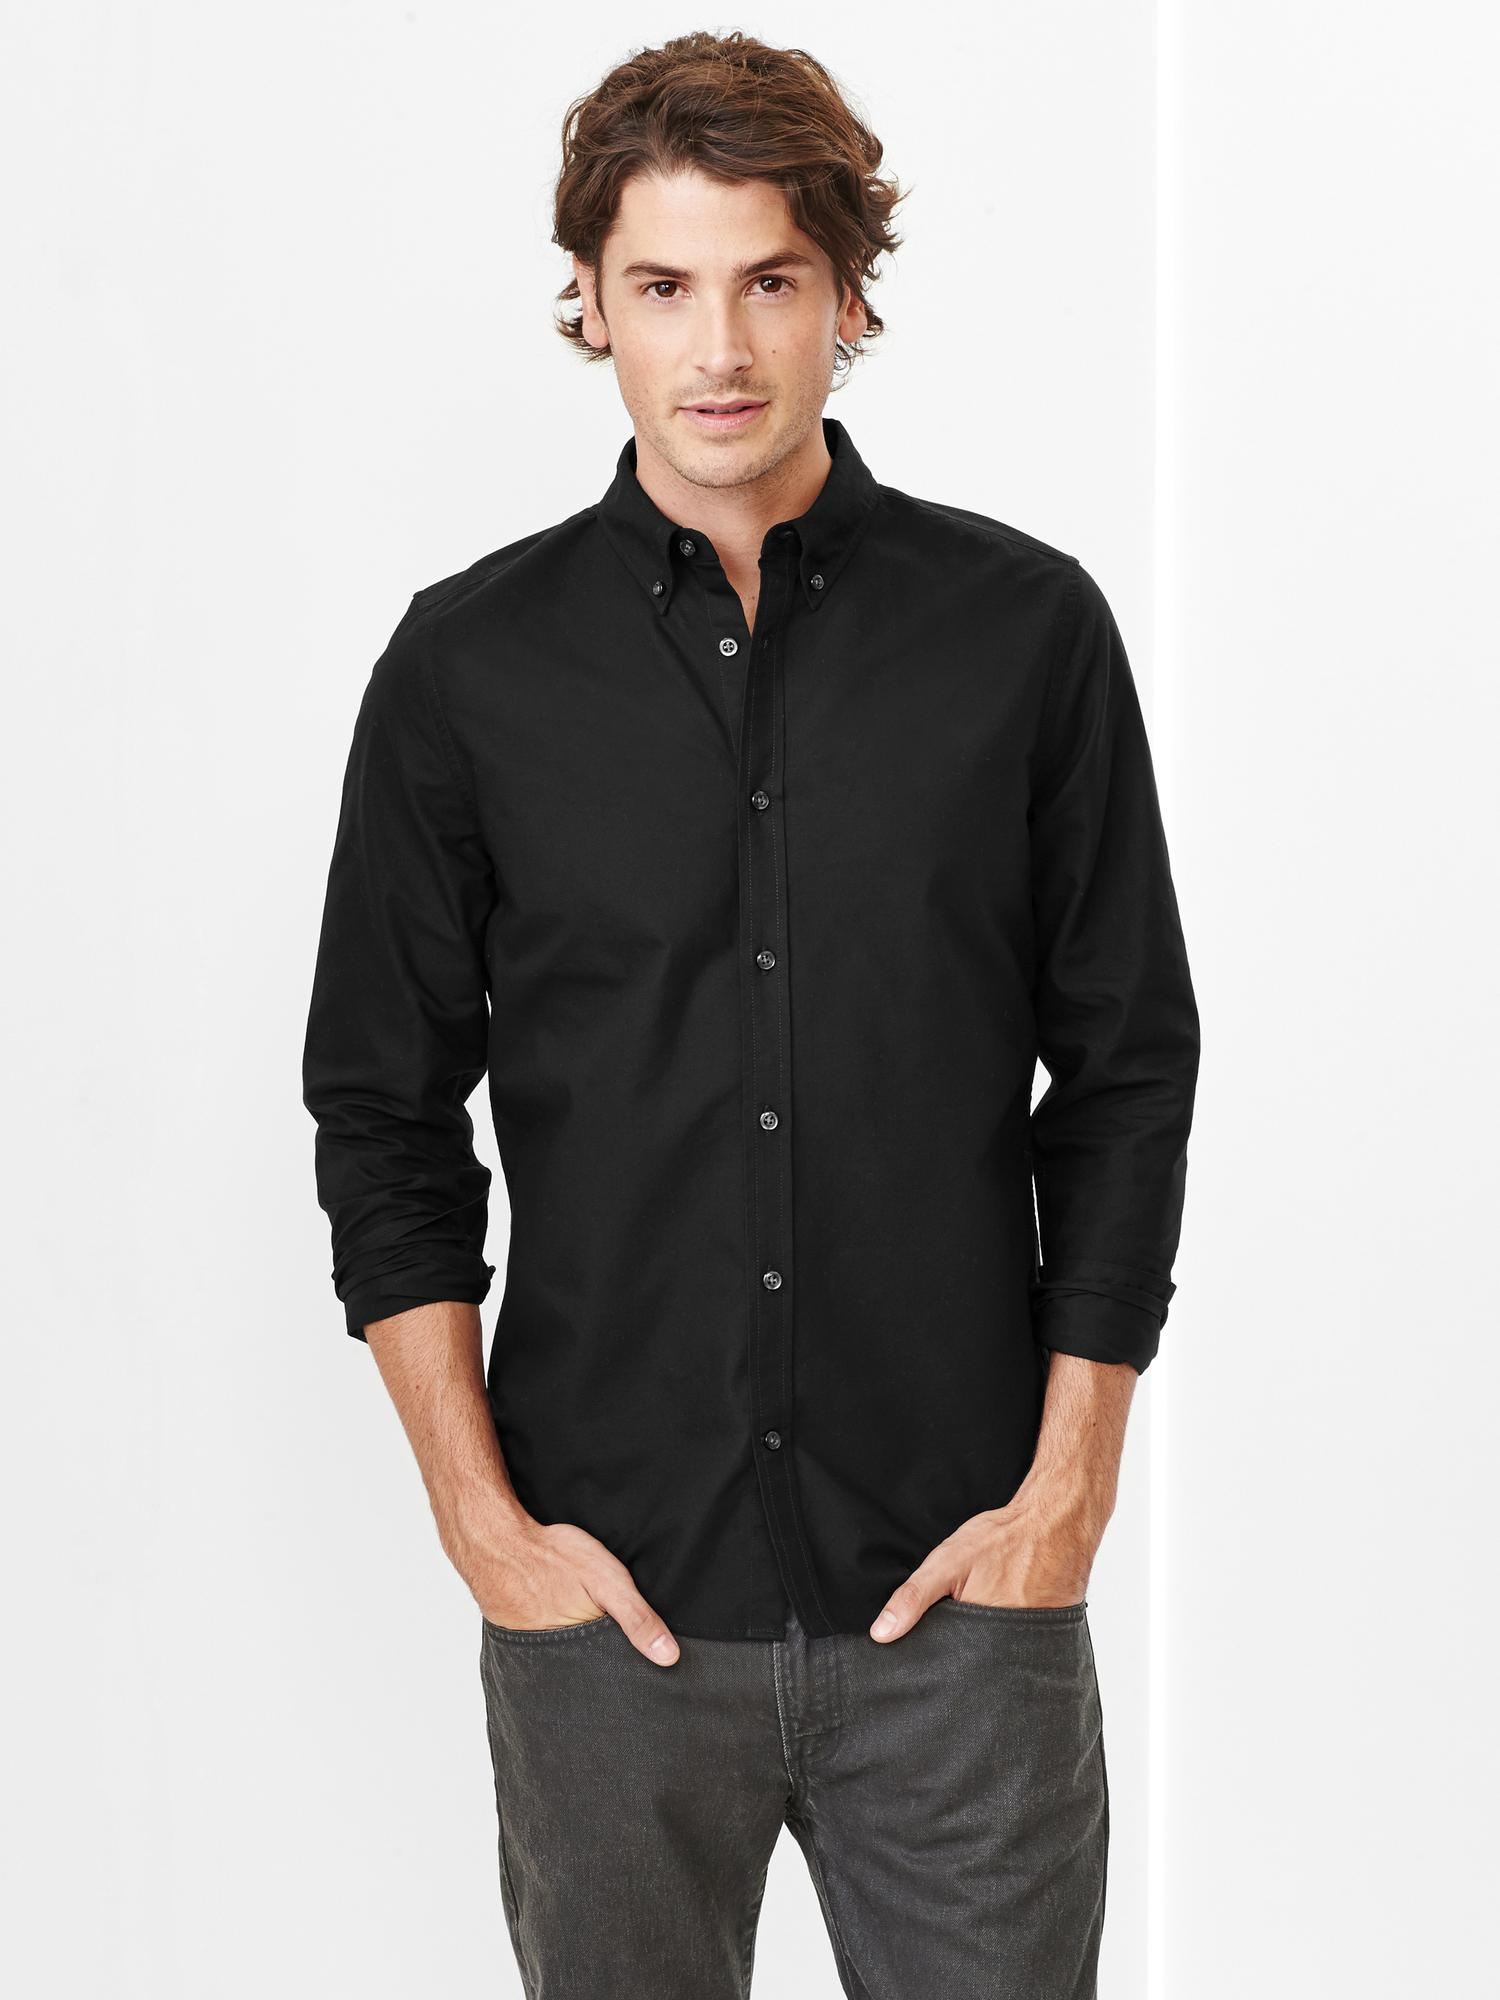 Find great deals on eBay for womens black oxford shirt. Shop with confidence.